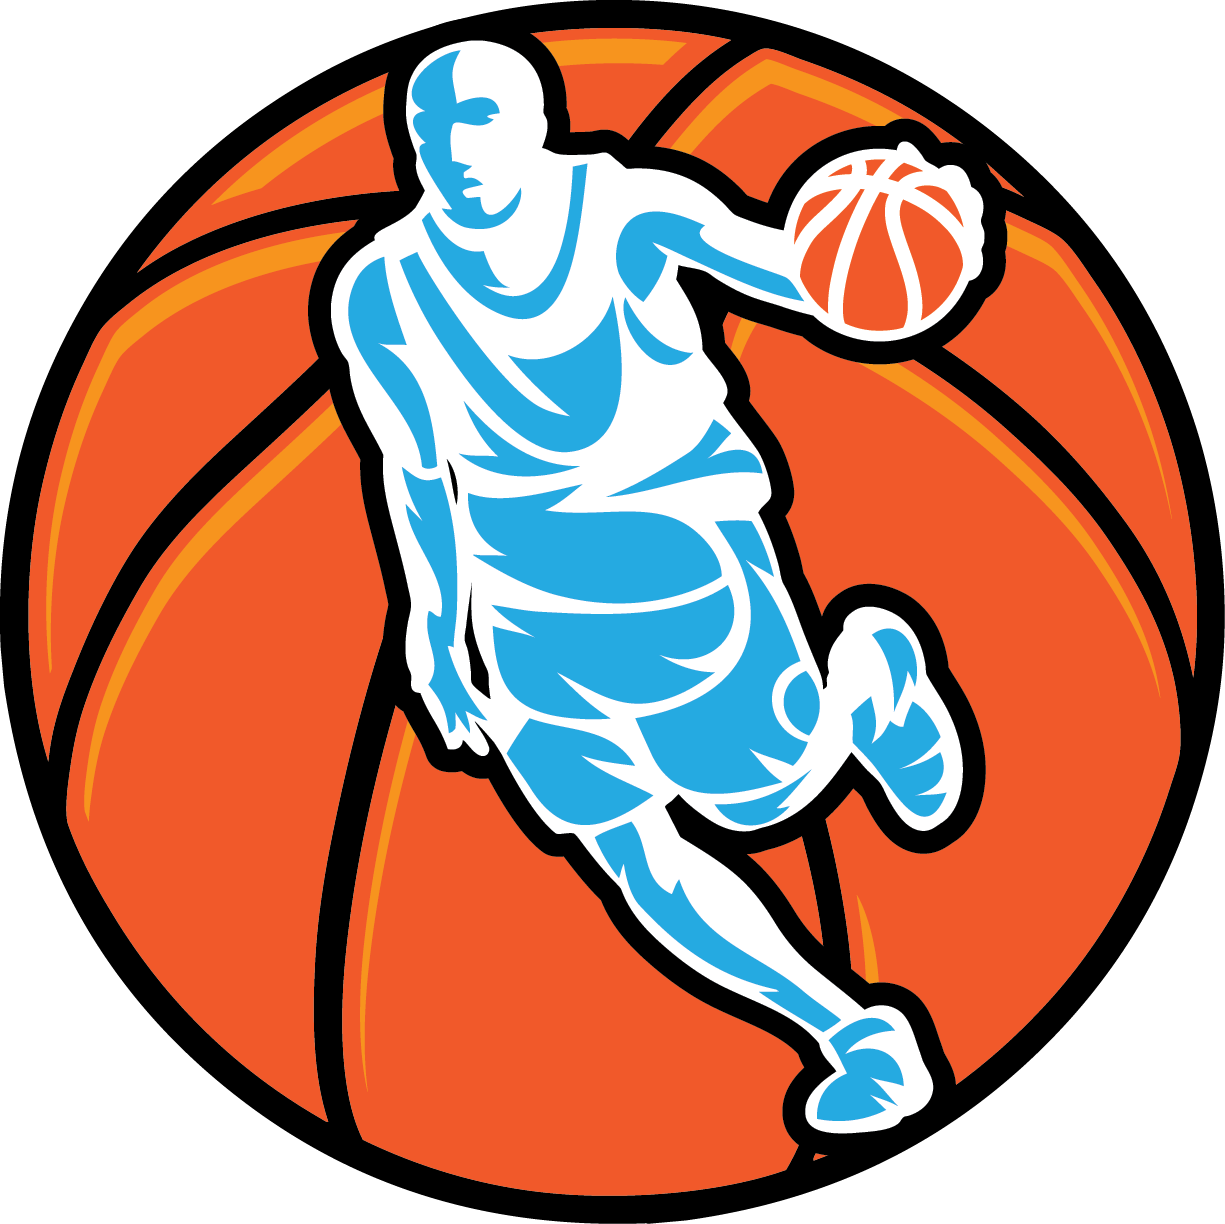 Red white and blue basketball clipart jpg royalty free Basketball Program | Lord's Gym jpg royalty free